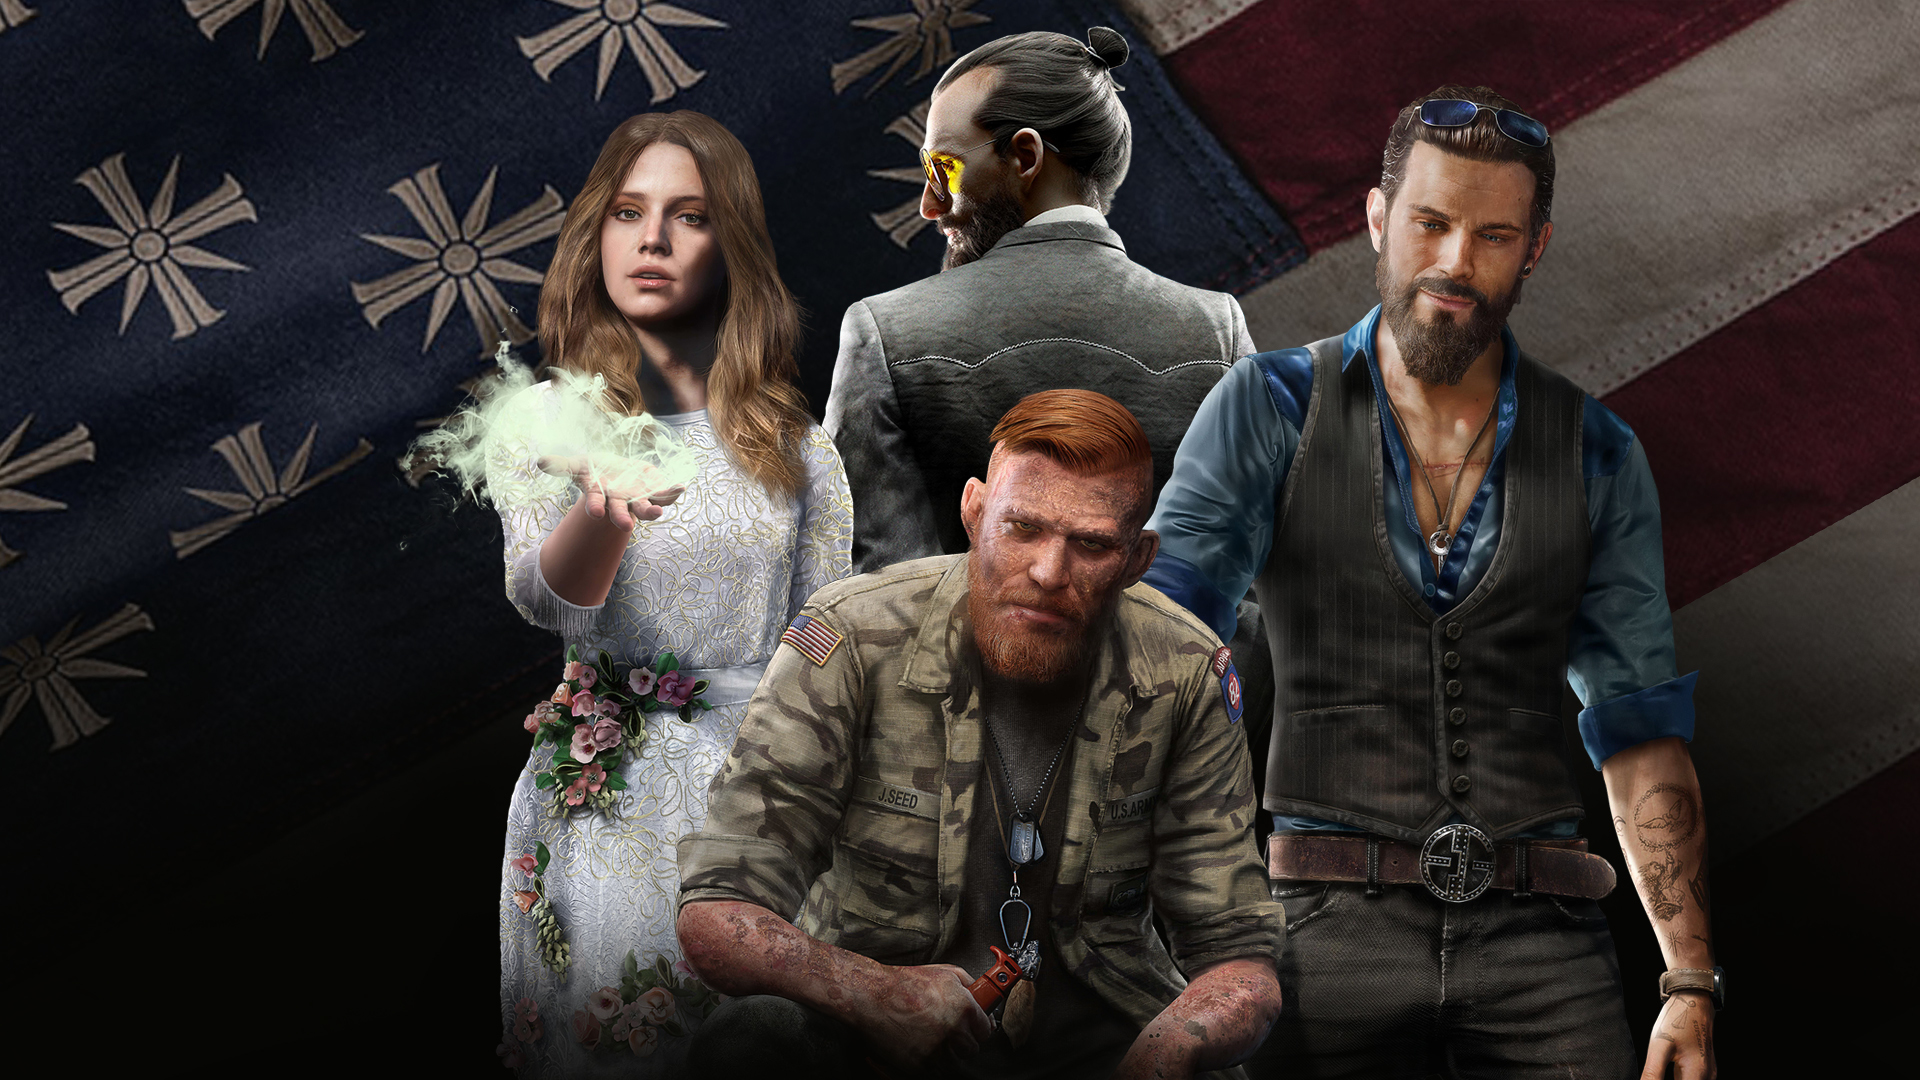 Far Cry 5 Wallpapers: Far Cry 5 Seed Family, Full HD Wallpaper